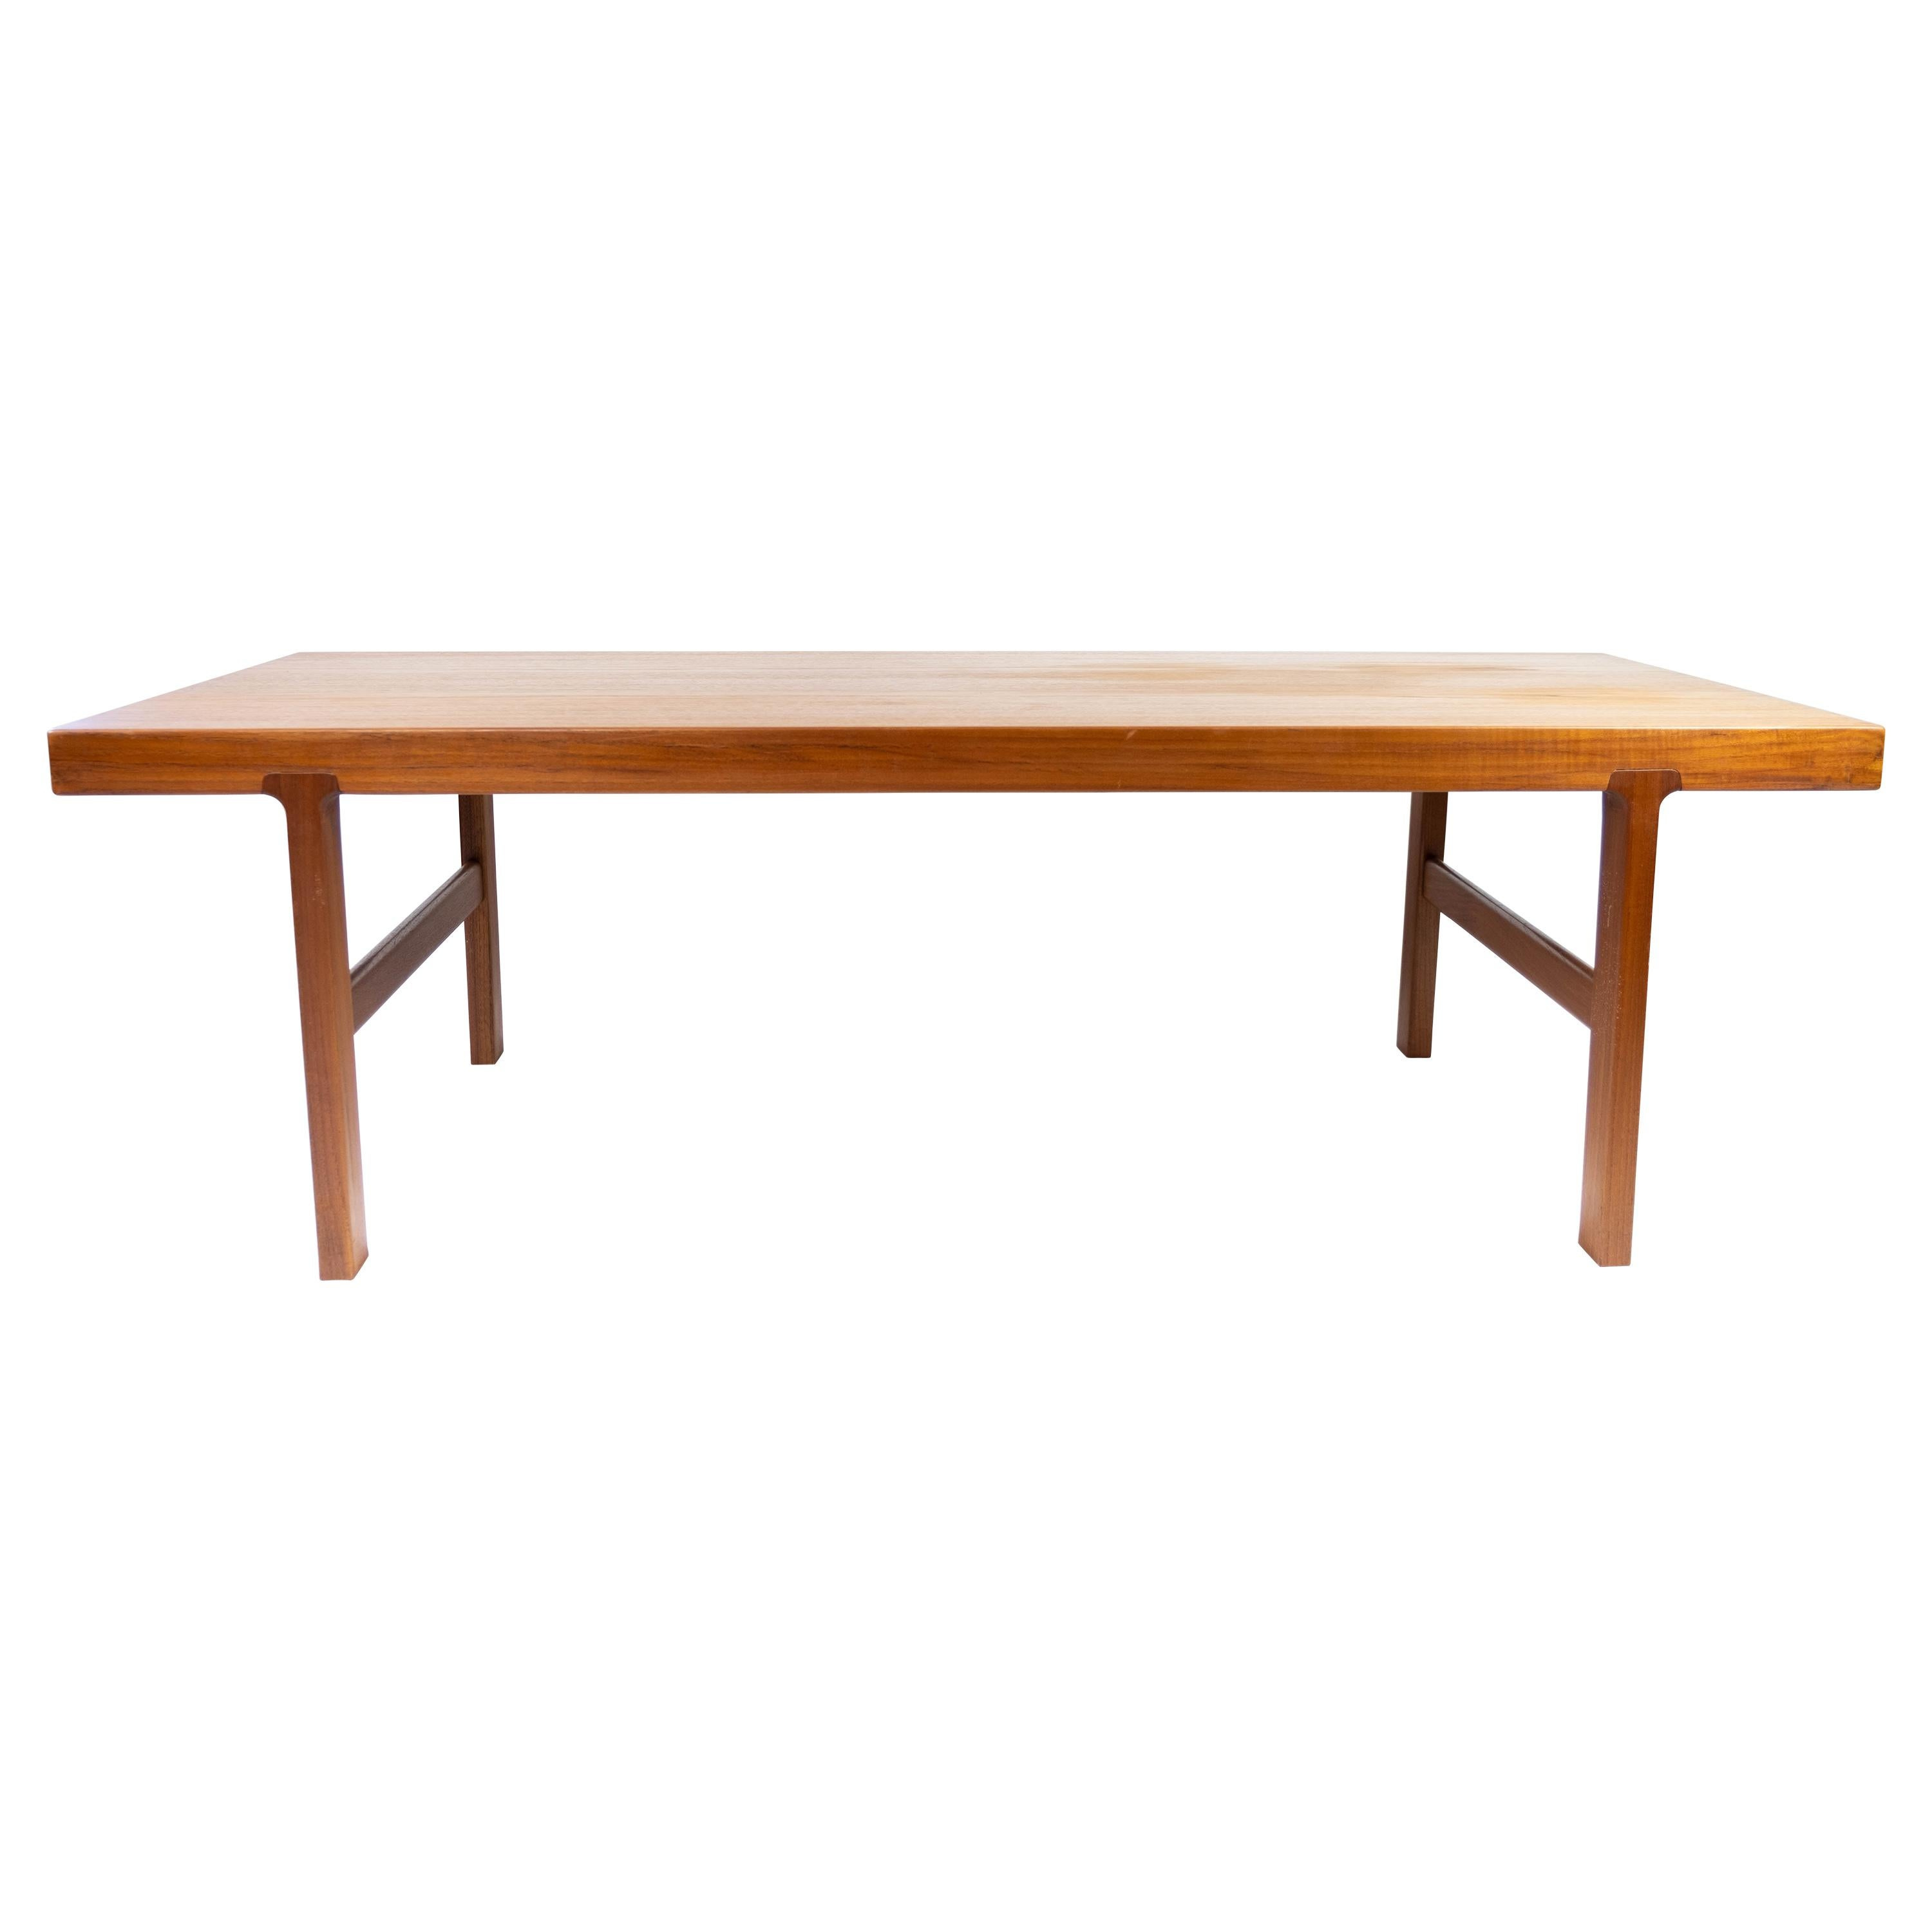 Coffee Table in Teak with Extension Plate of Danish Design from the 1960s